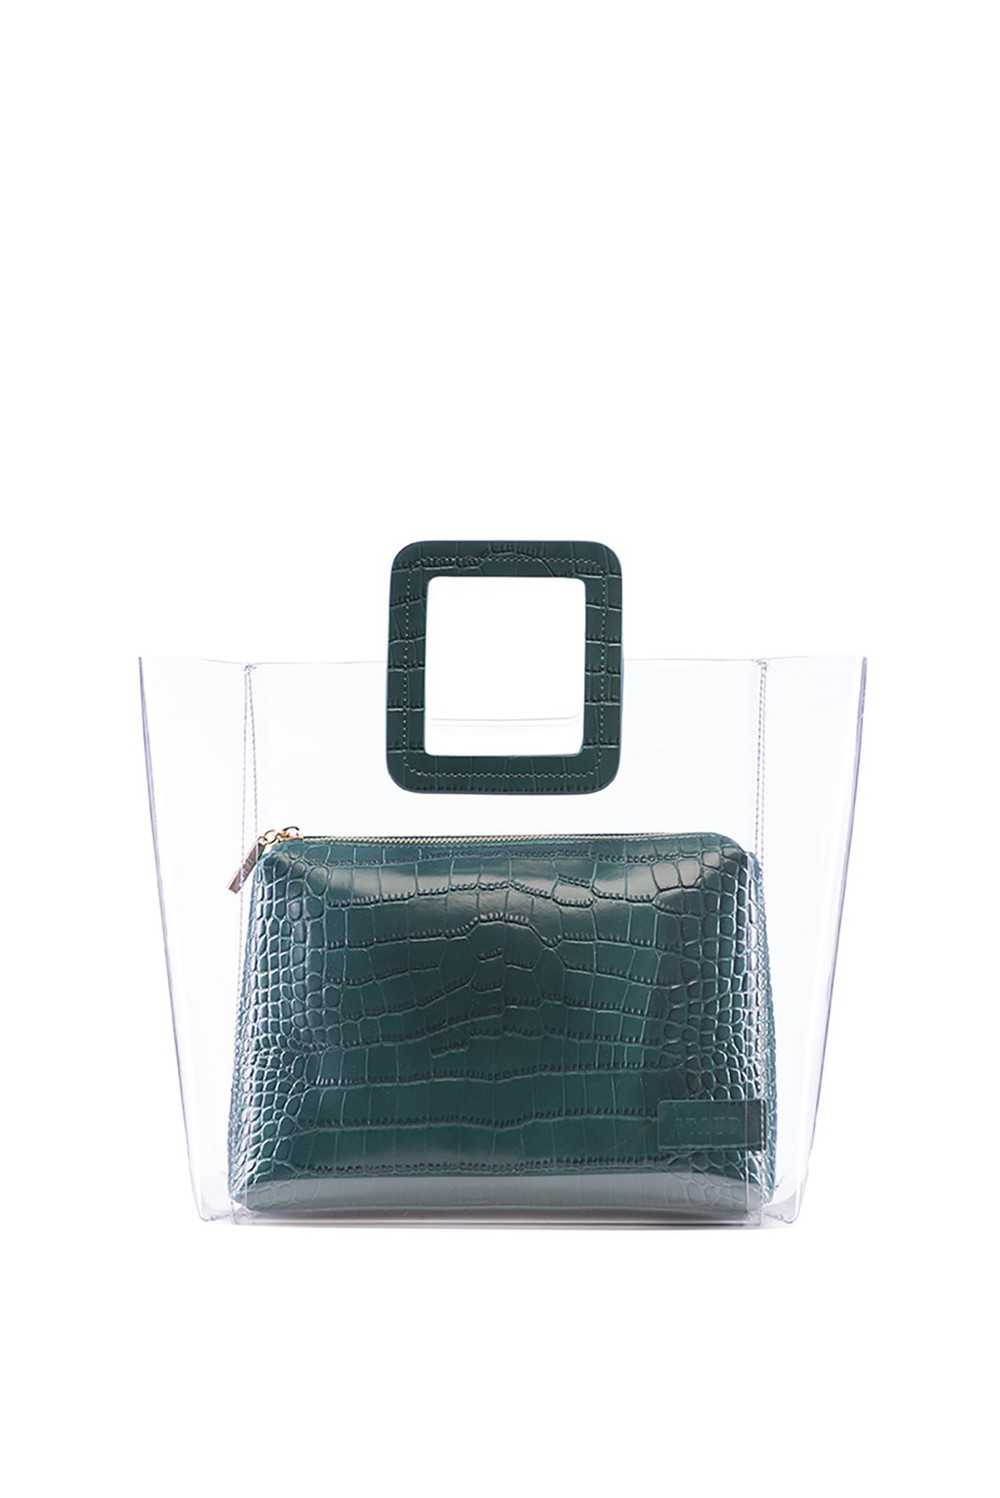 Staud SHIRLEY BAG | JADE CROC EMBOSSED